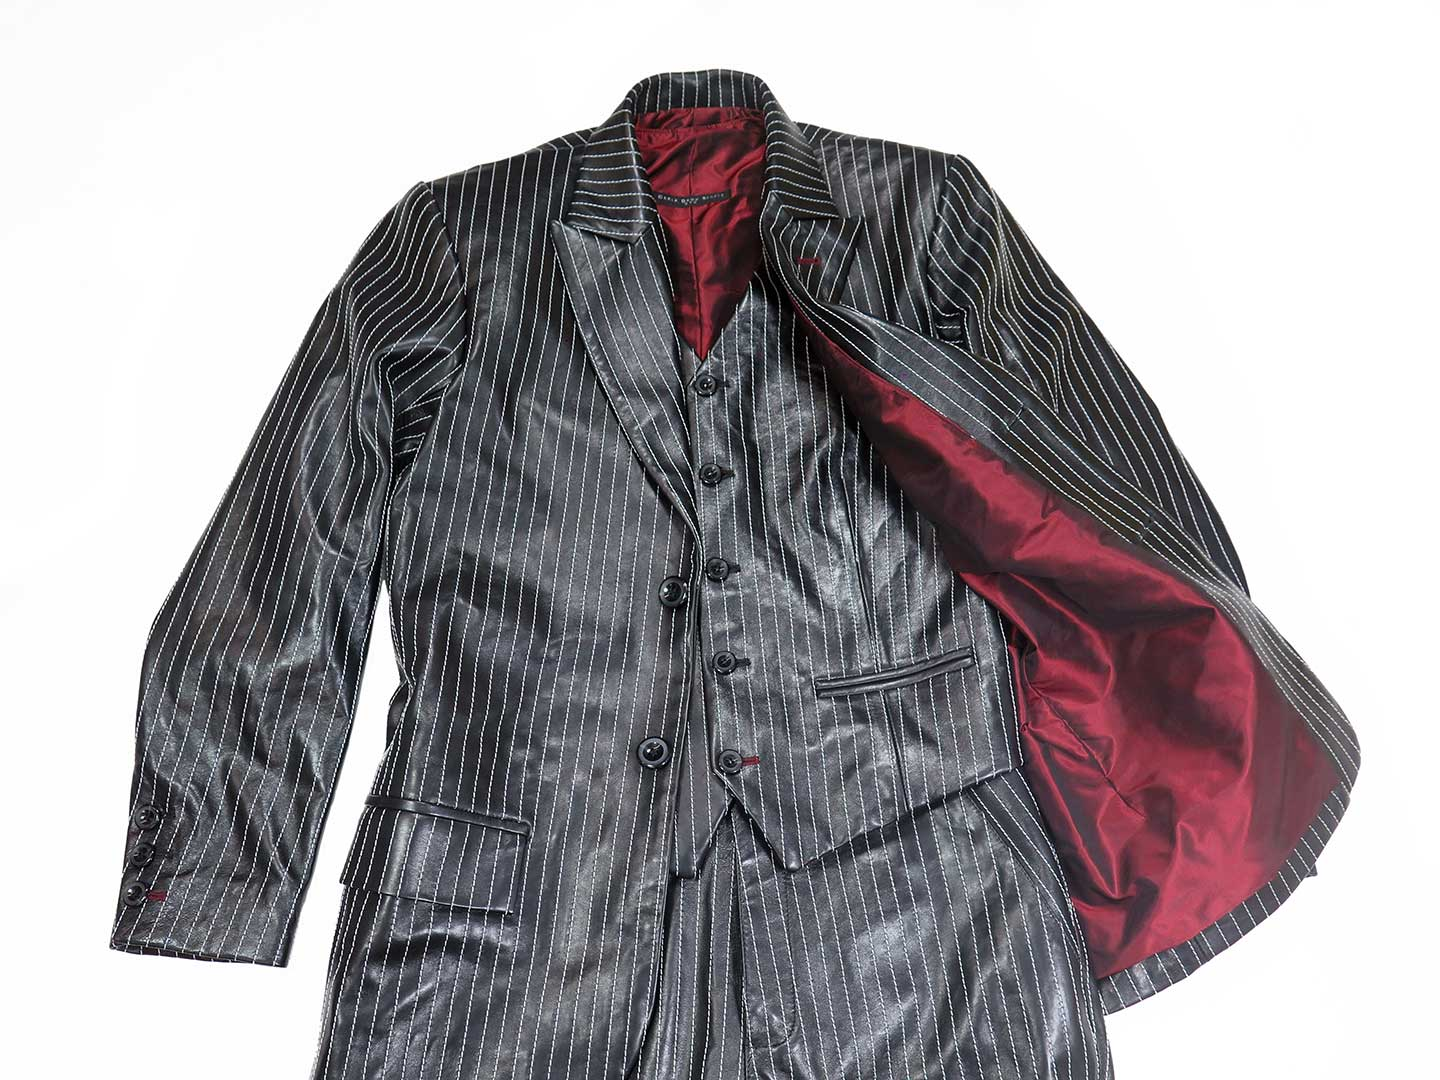 3 piece pinstriped leather suit